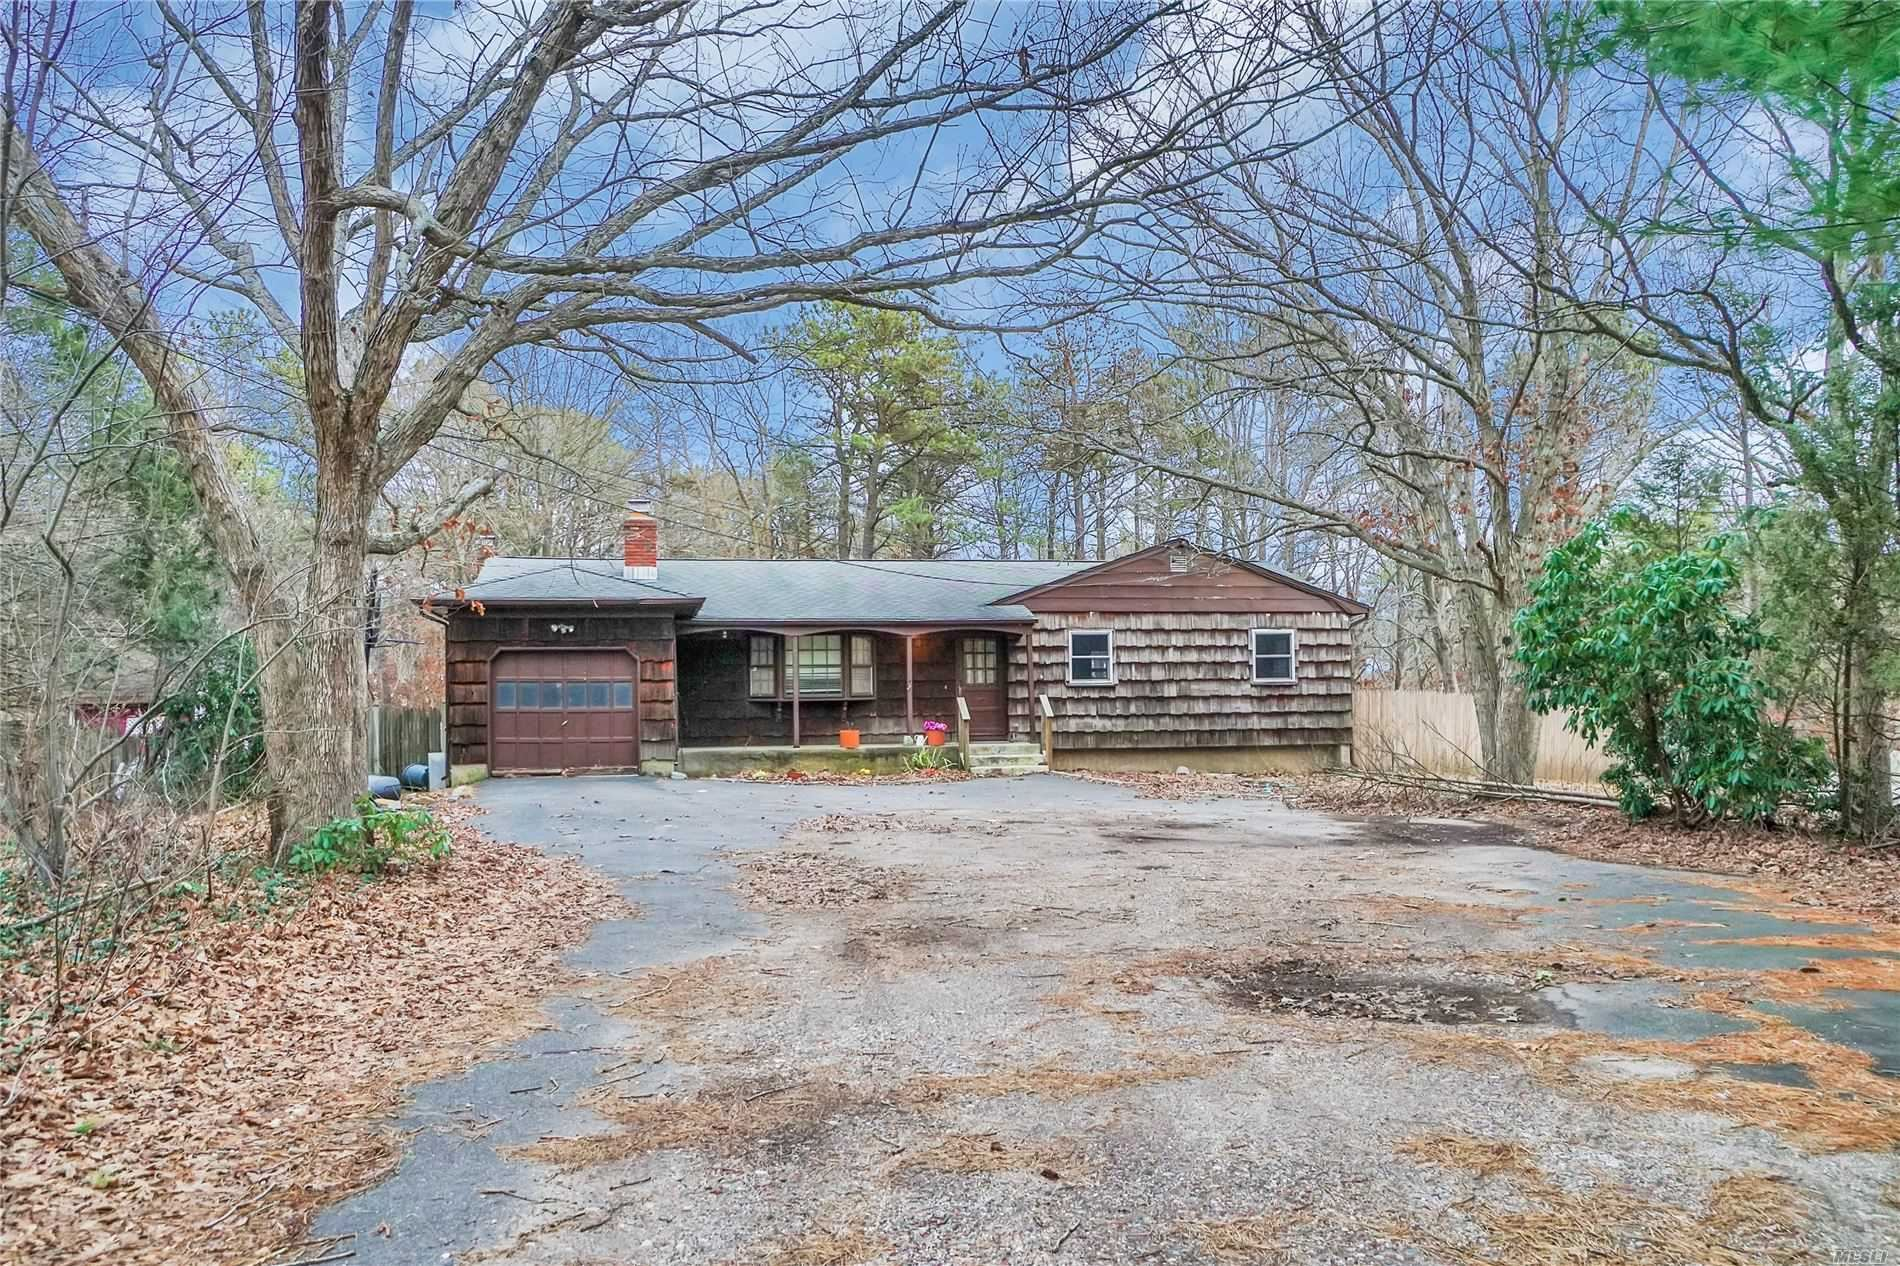 269 Helme Avenue, Miller Place, NY 11764 - MLS#: 3188020